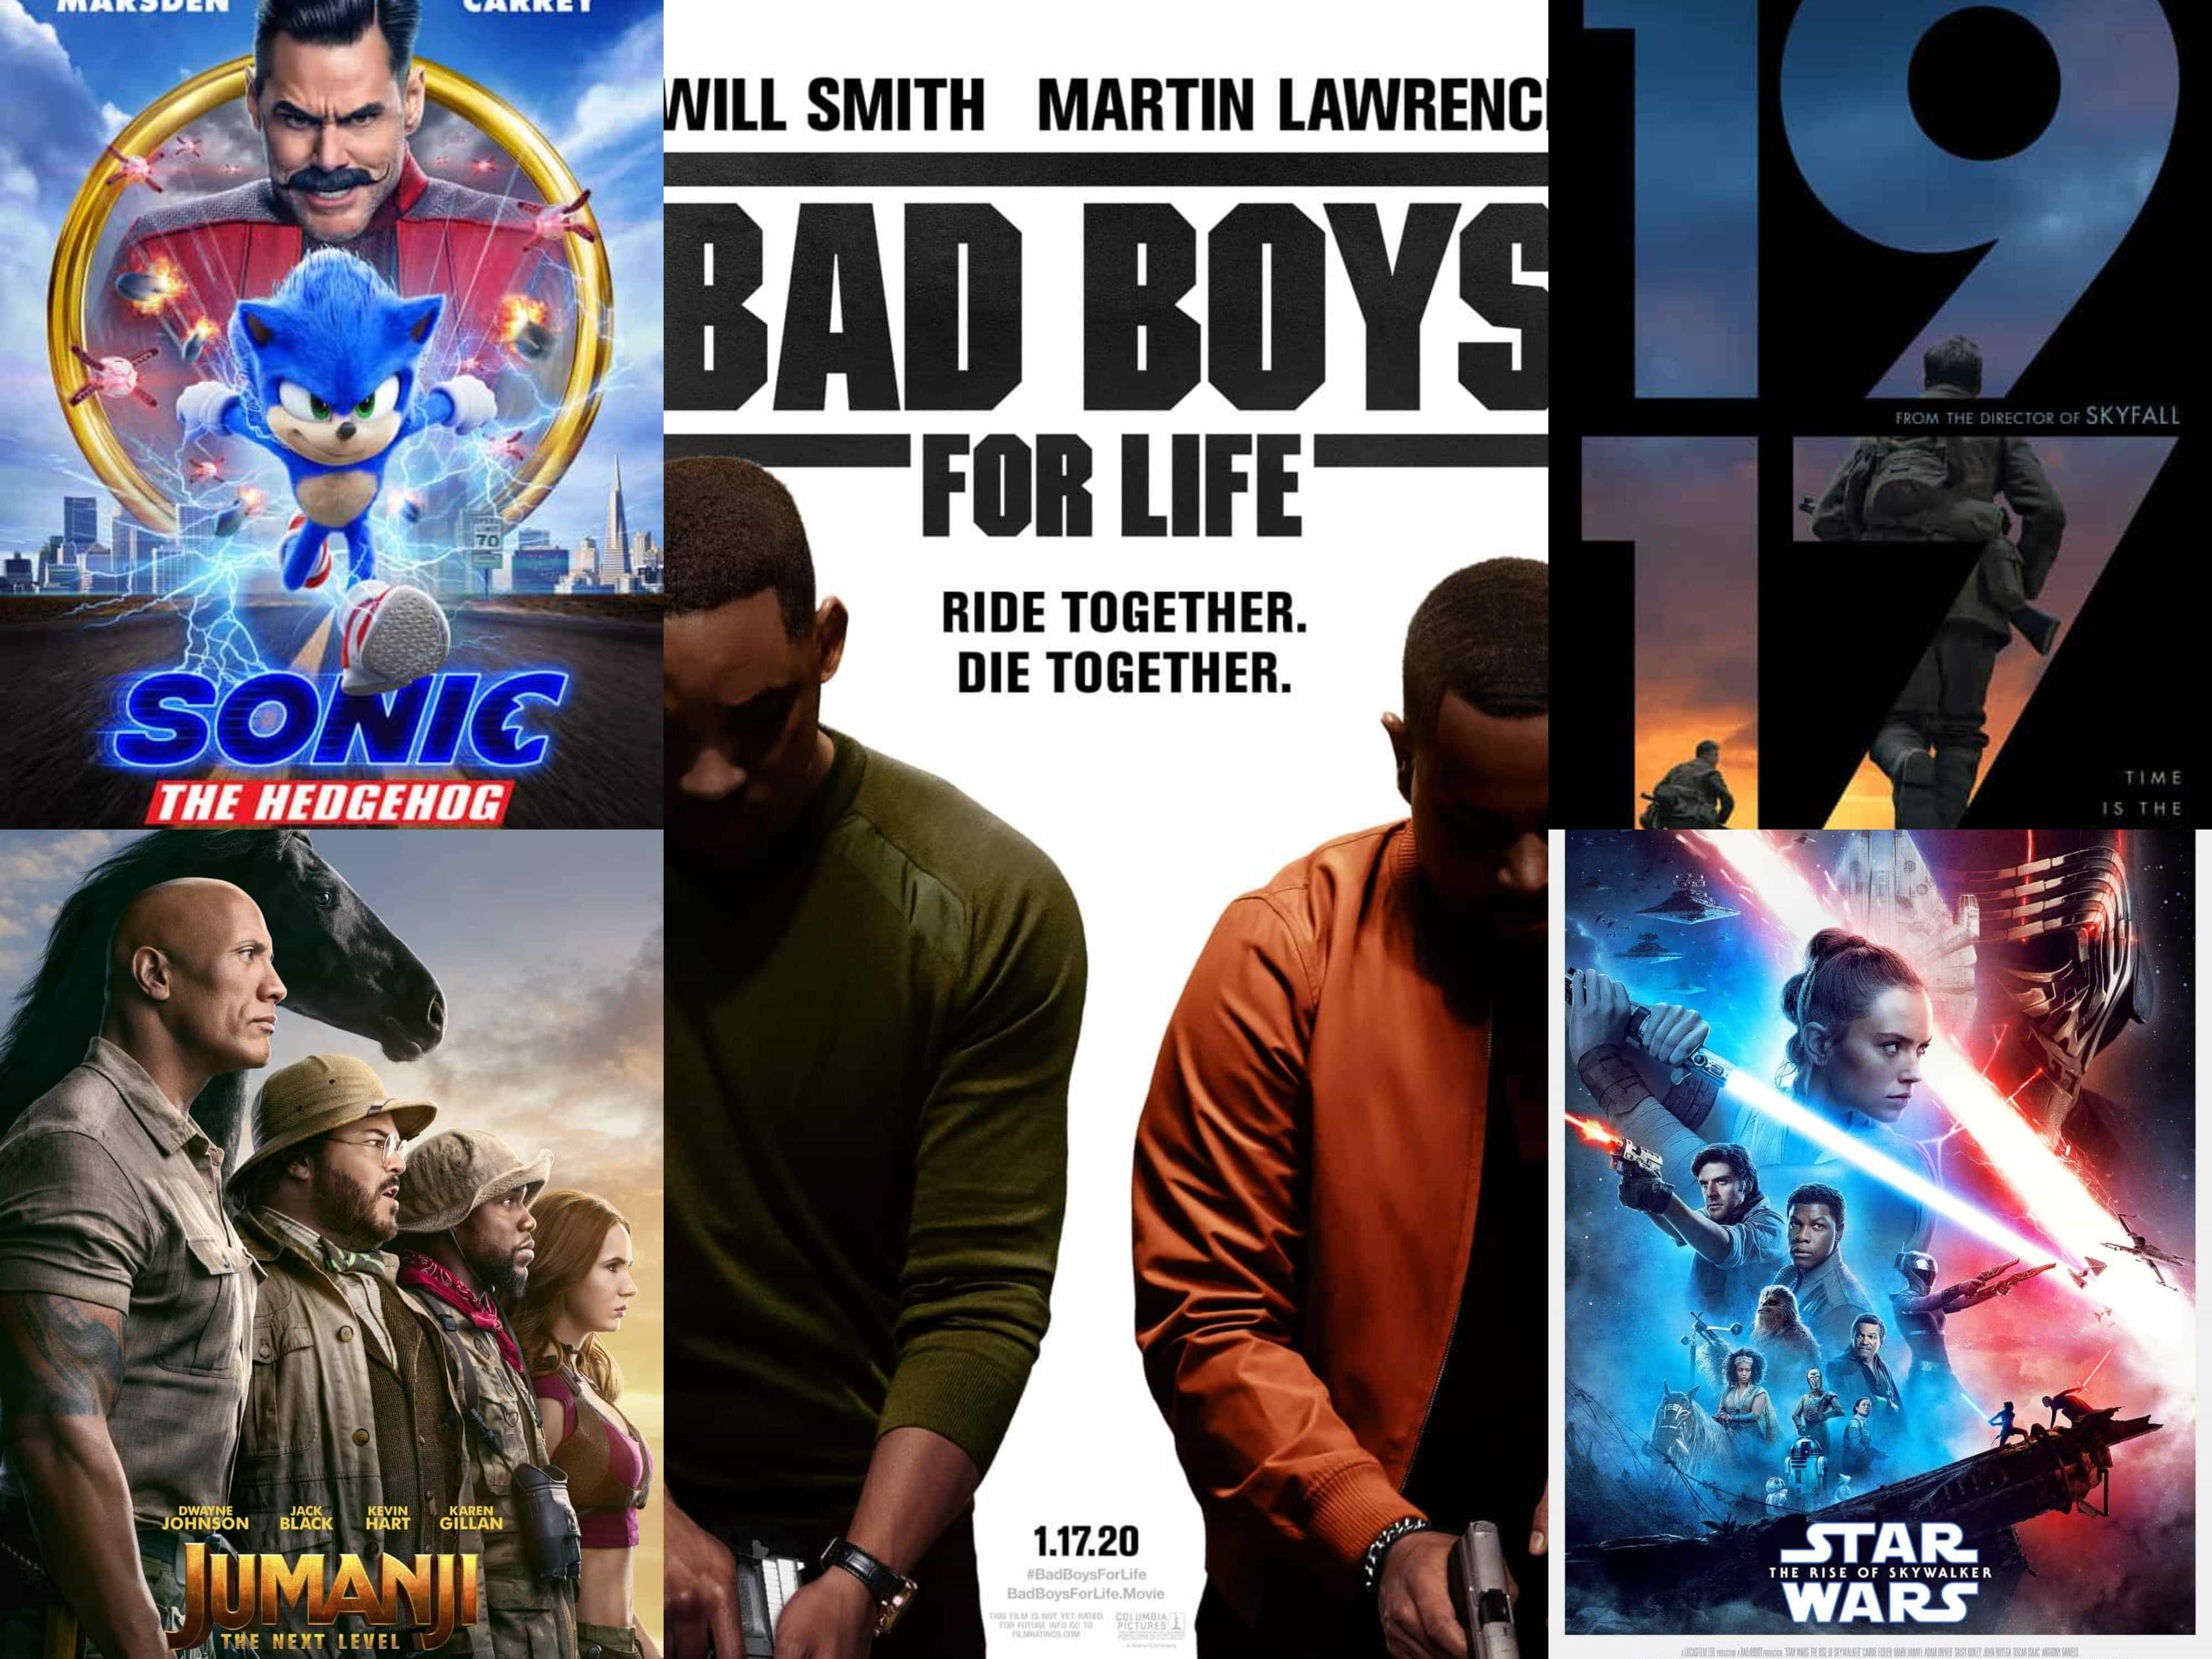 Top Grossing Movies 2020 US -  After a year of cinema closures and then screens with limited capacity, Bad Boys For Life is the top grossing movie in the US